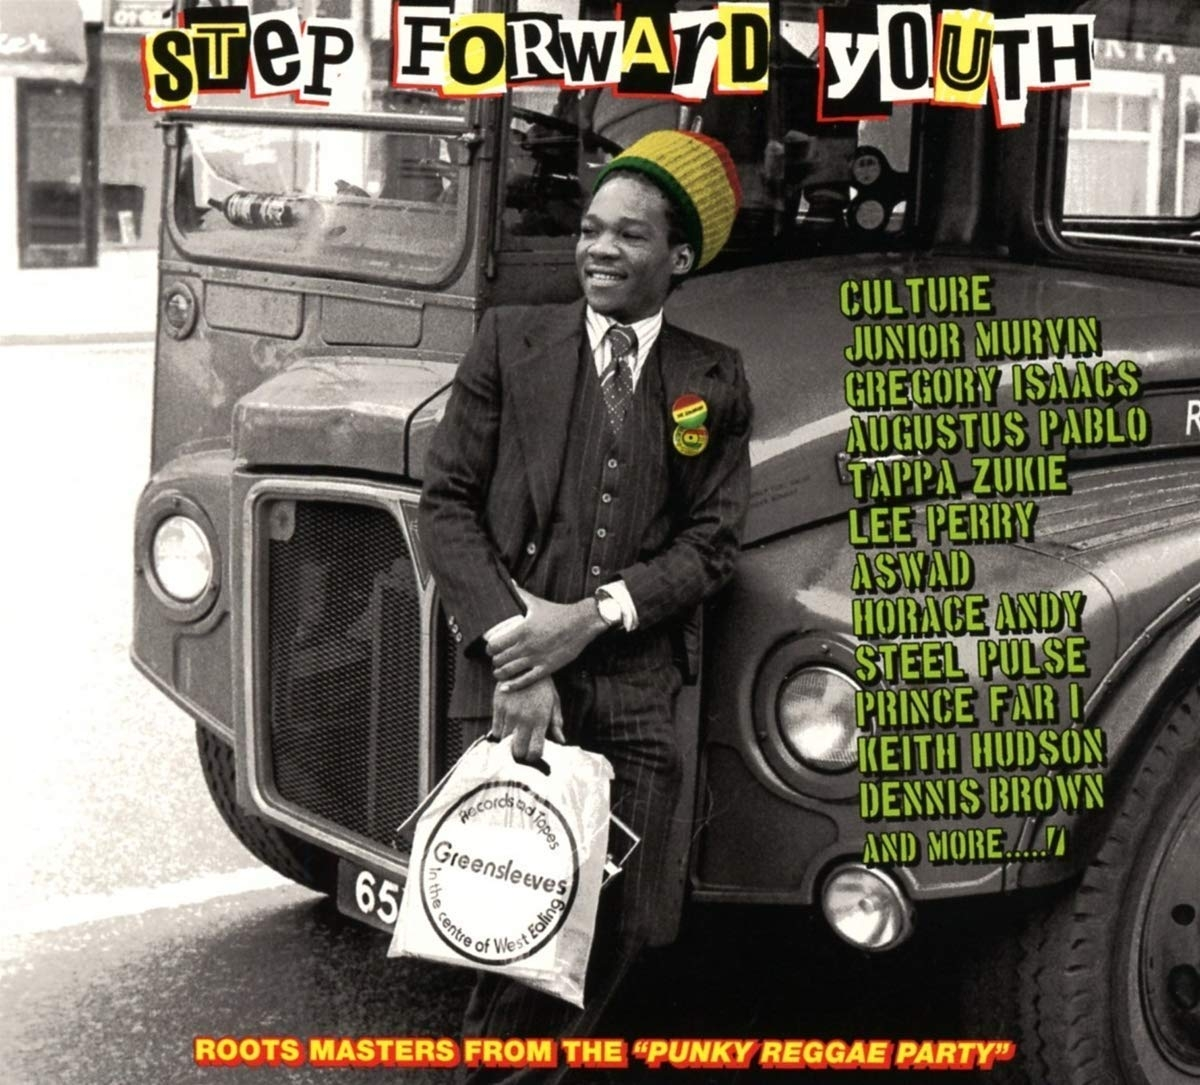 world reg 02 19 step Forward Youth